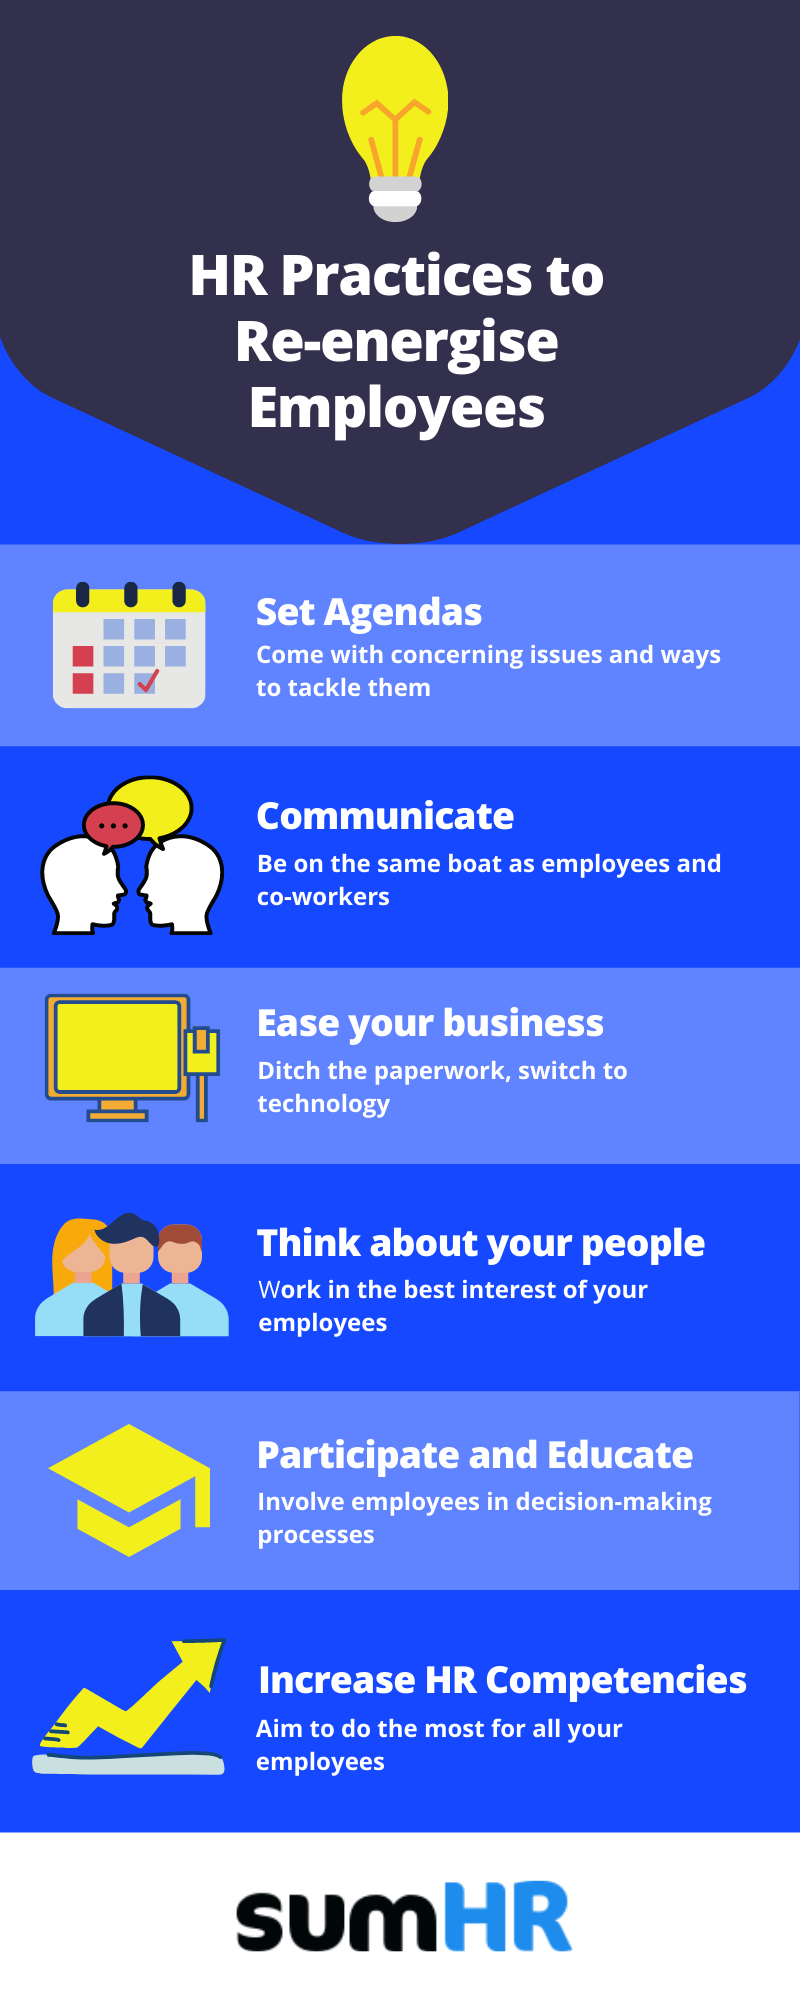 Best HR practices to Re-energize Employees in 2021